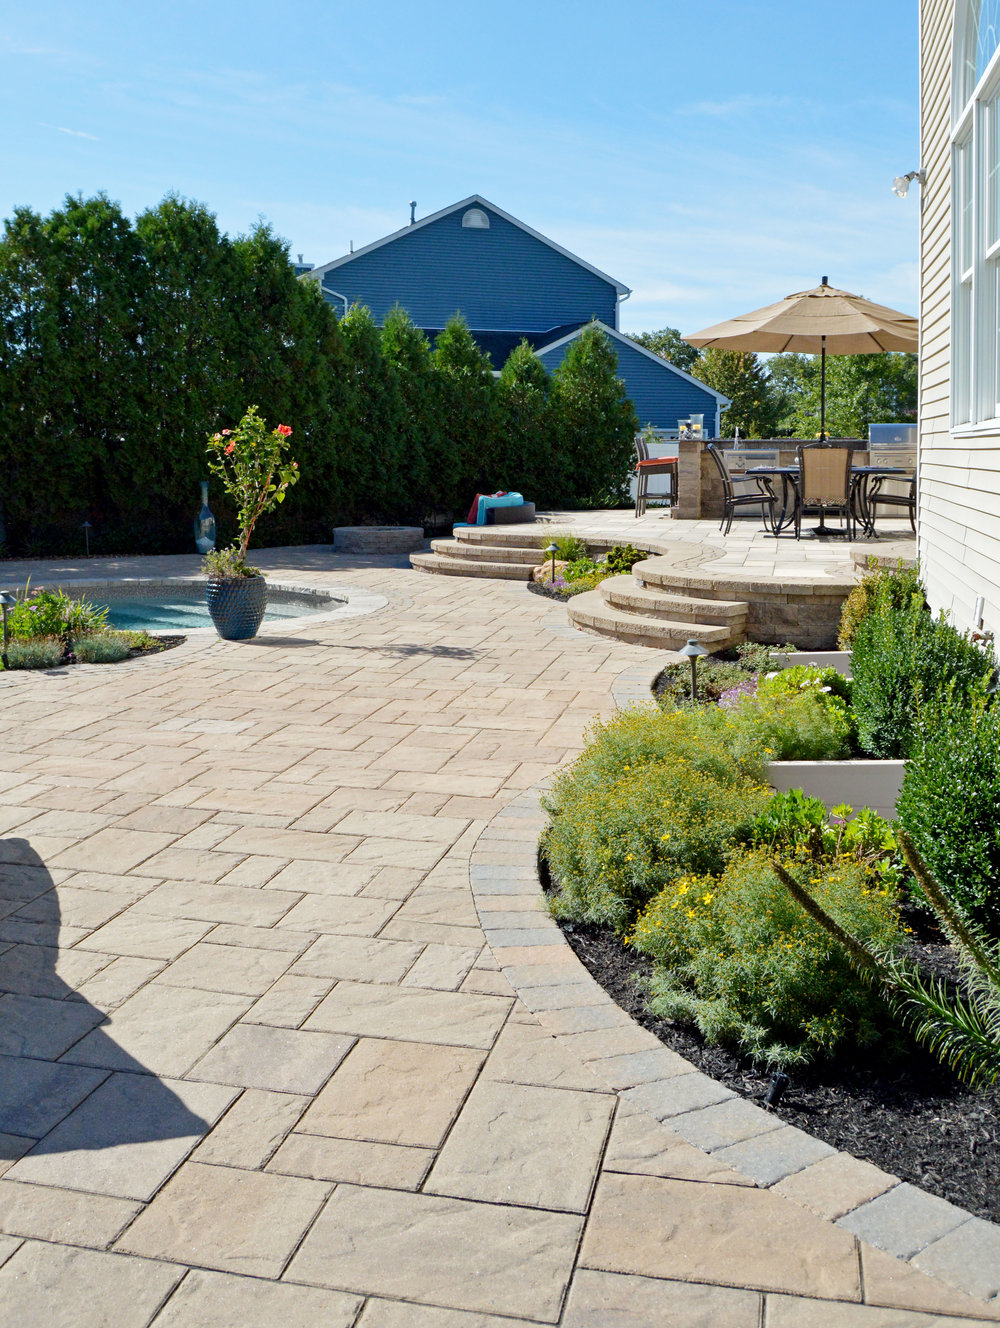 Smithtown, NY swimming pool and patio